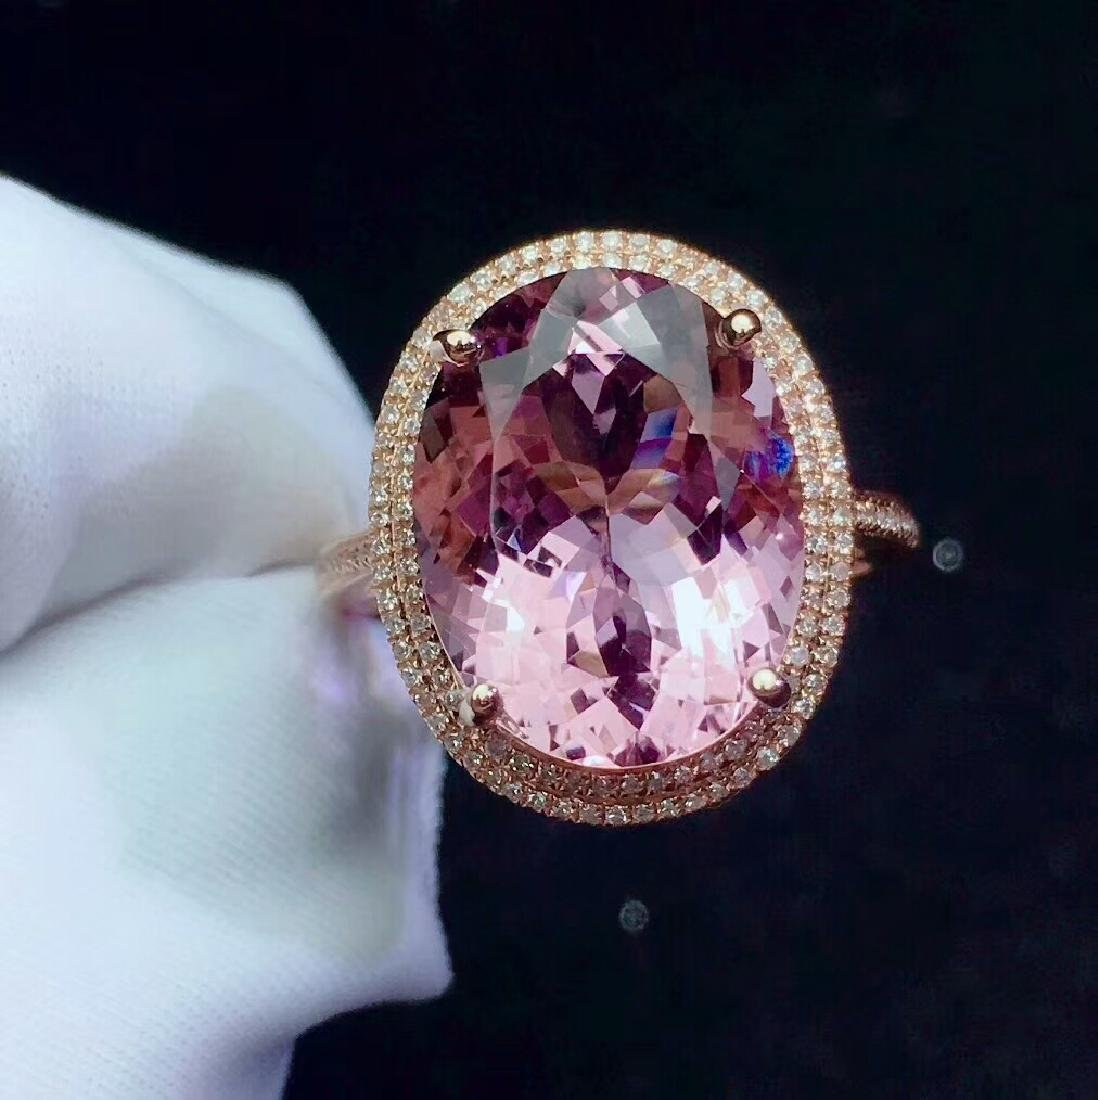 8.9ct Morganite Ring in 18kt white Gold